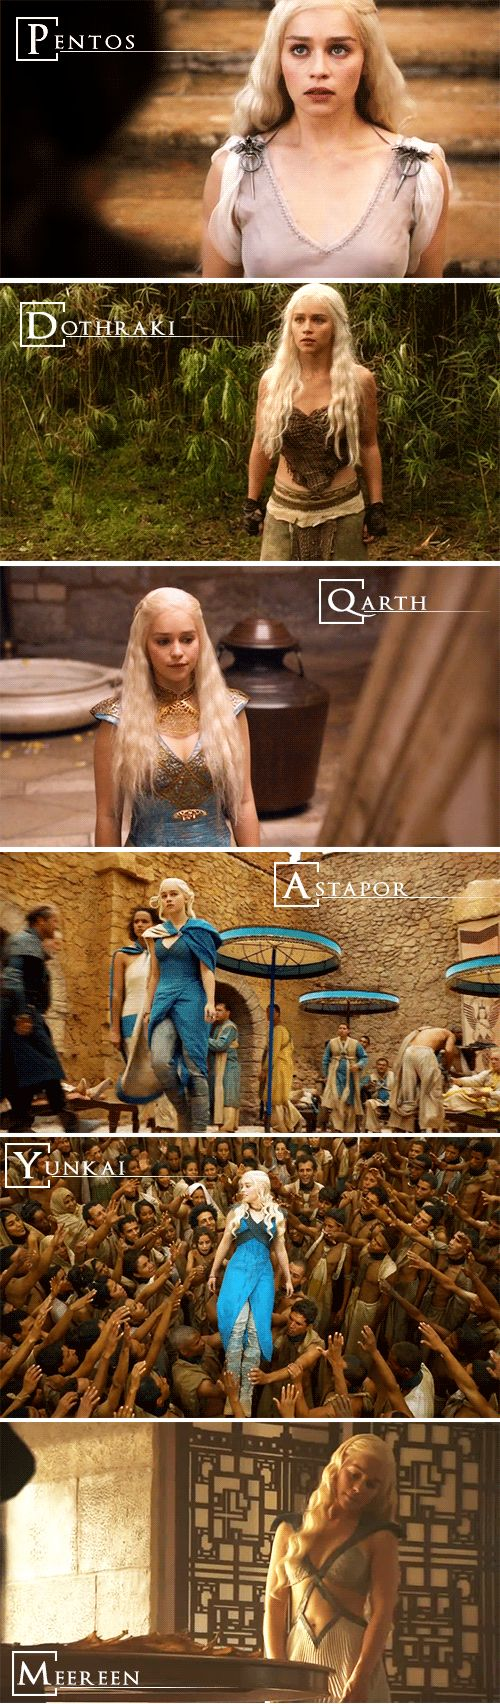 Ahhh the rise of Daenerys. How I used to love her! Annnnnd now in Mereen...she is a total BITCH. The rise always does come before the FALL.